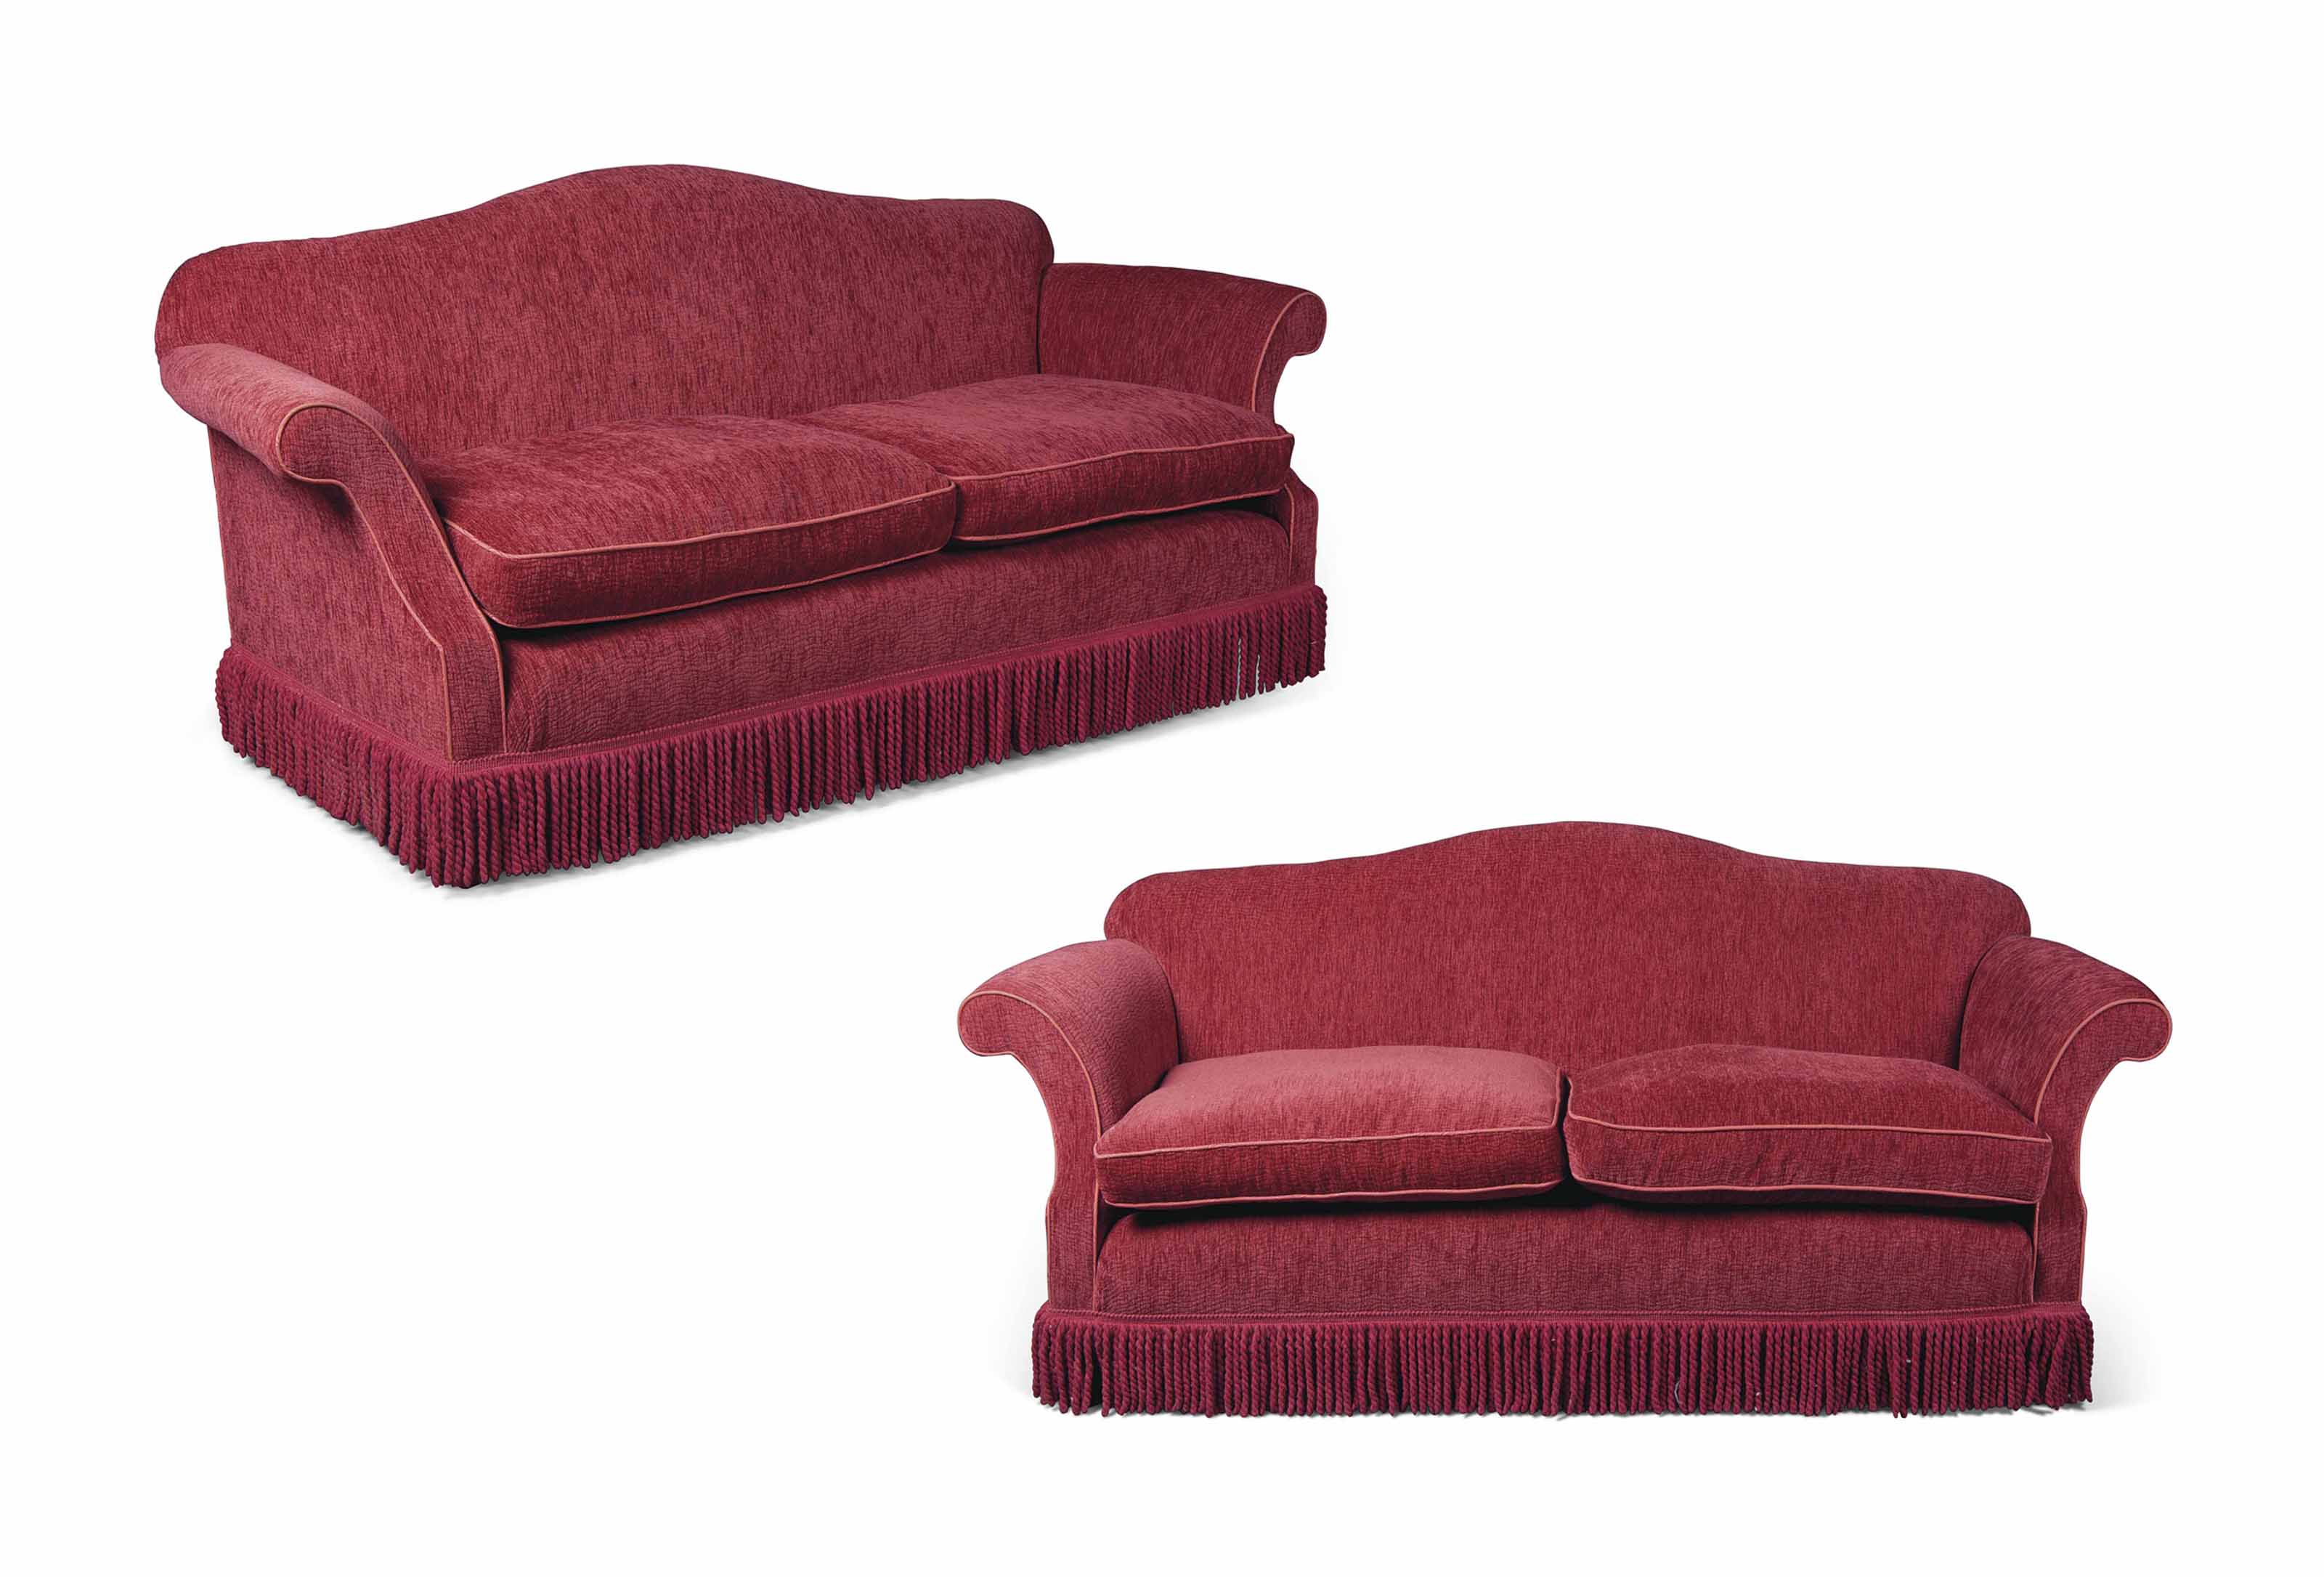 A PAIR OF ENGLISH RED VELVET TWO-SEAT SOFAS